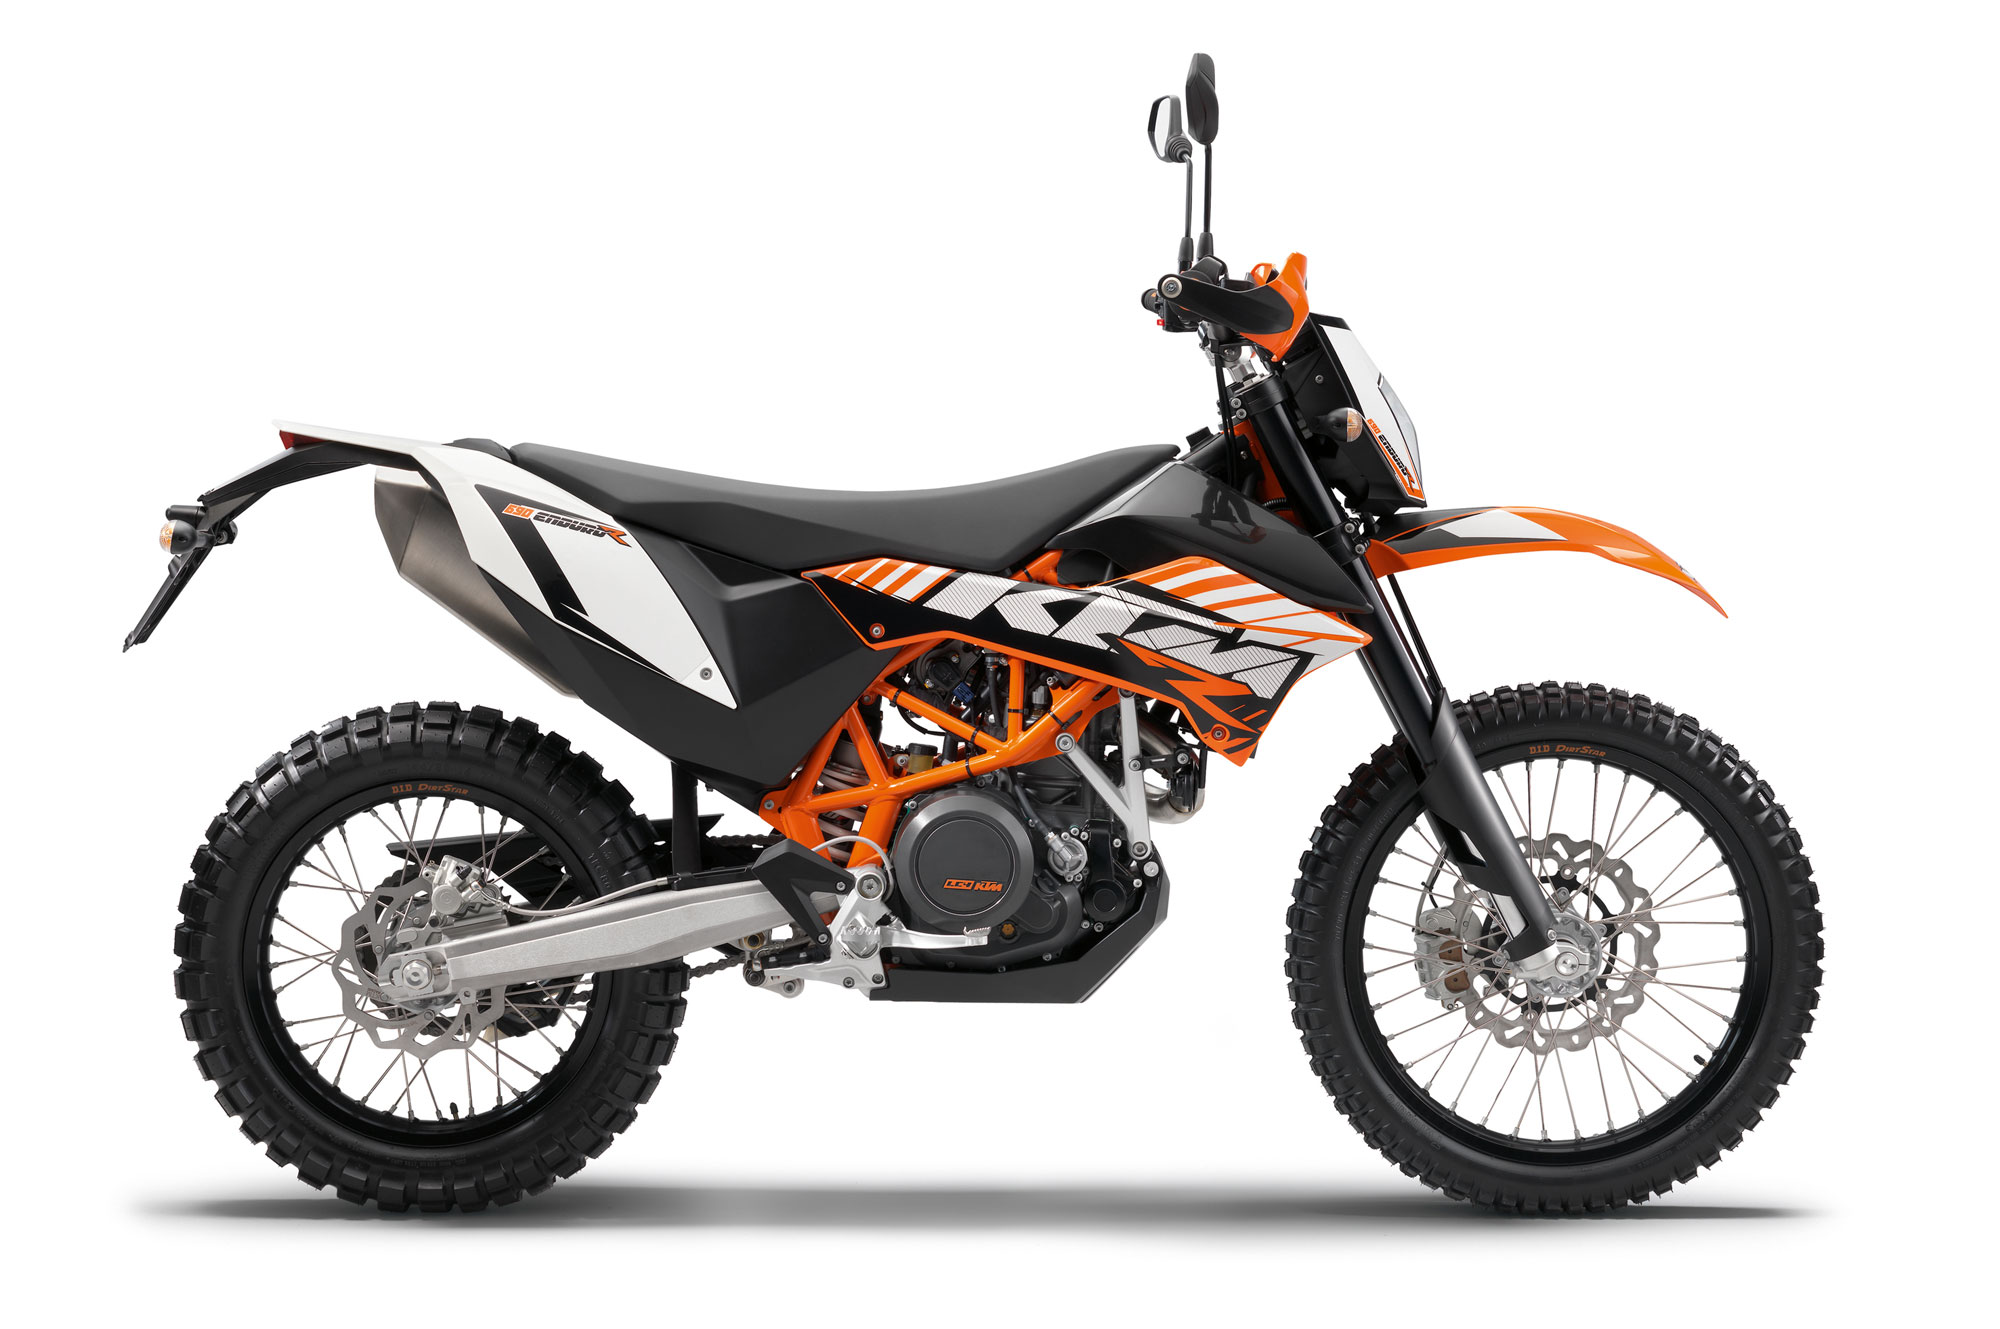 KTM 500XCW, KTM690 Enduro, or Husky701 Enduro? - Moto-Related ...